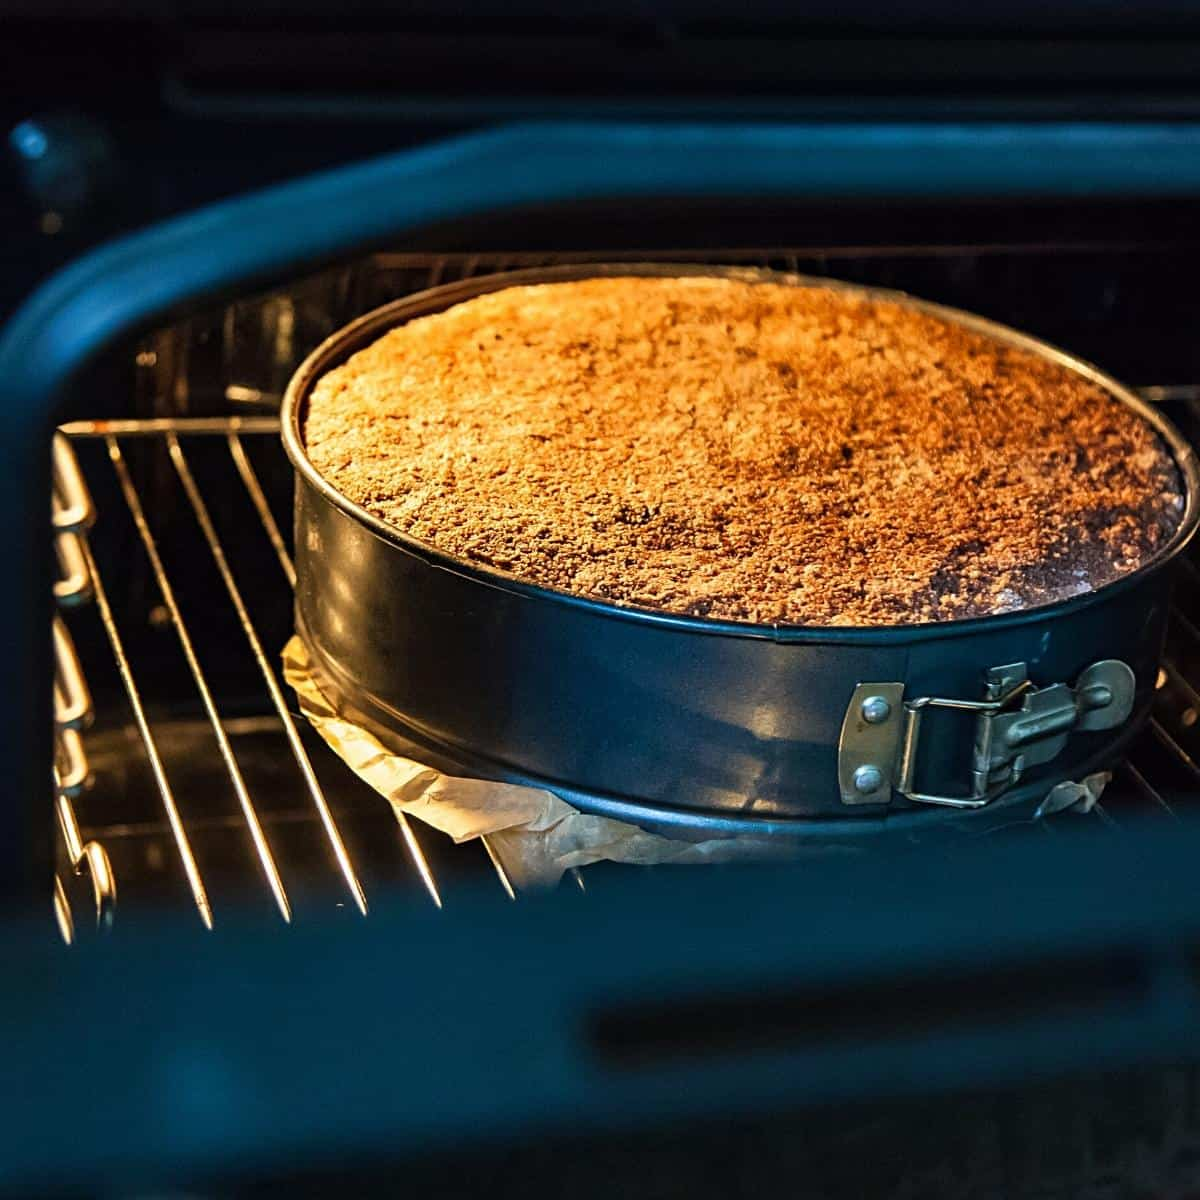 Baking Tips - do not crowd the oven when baking.